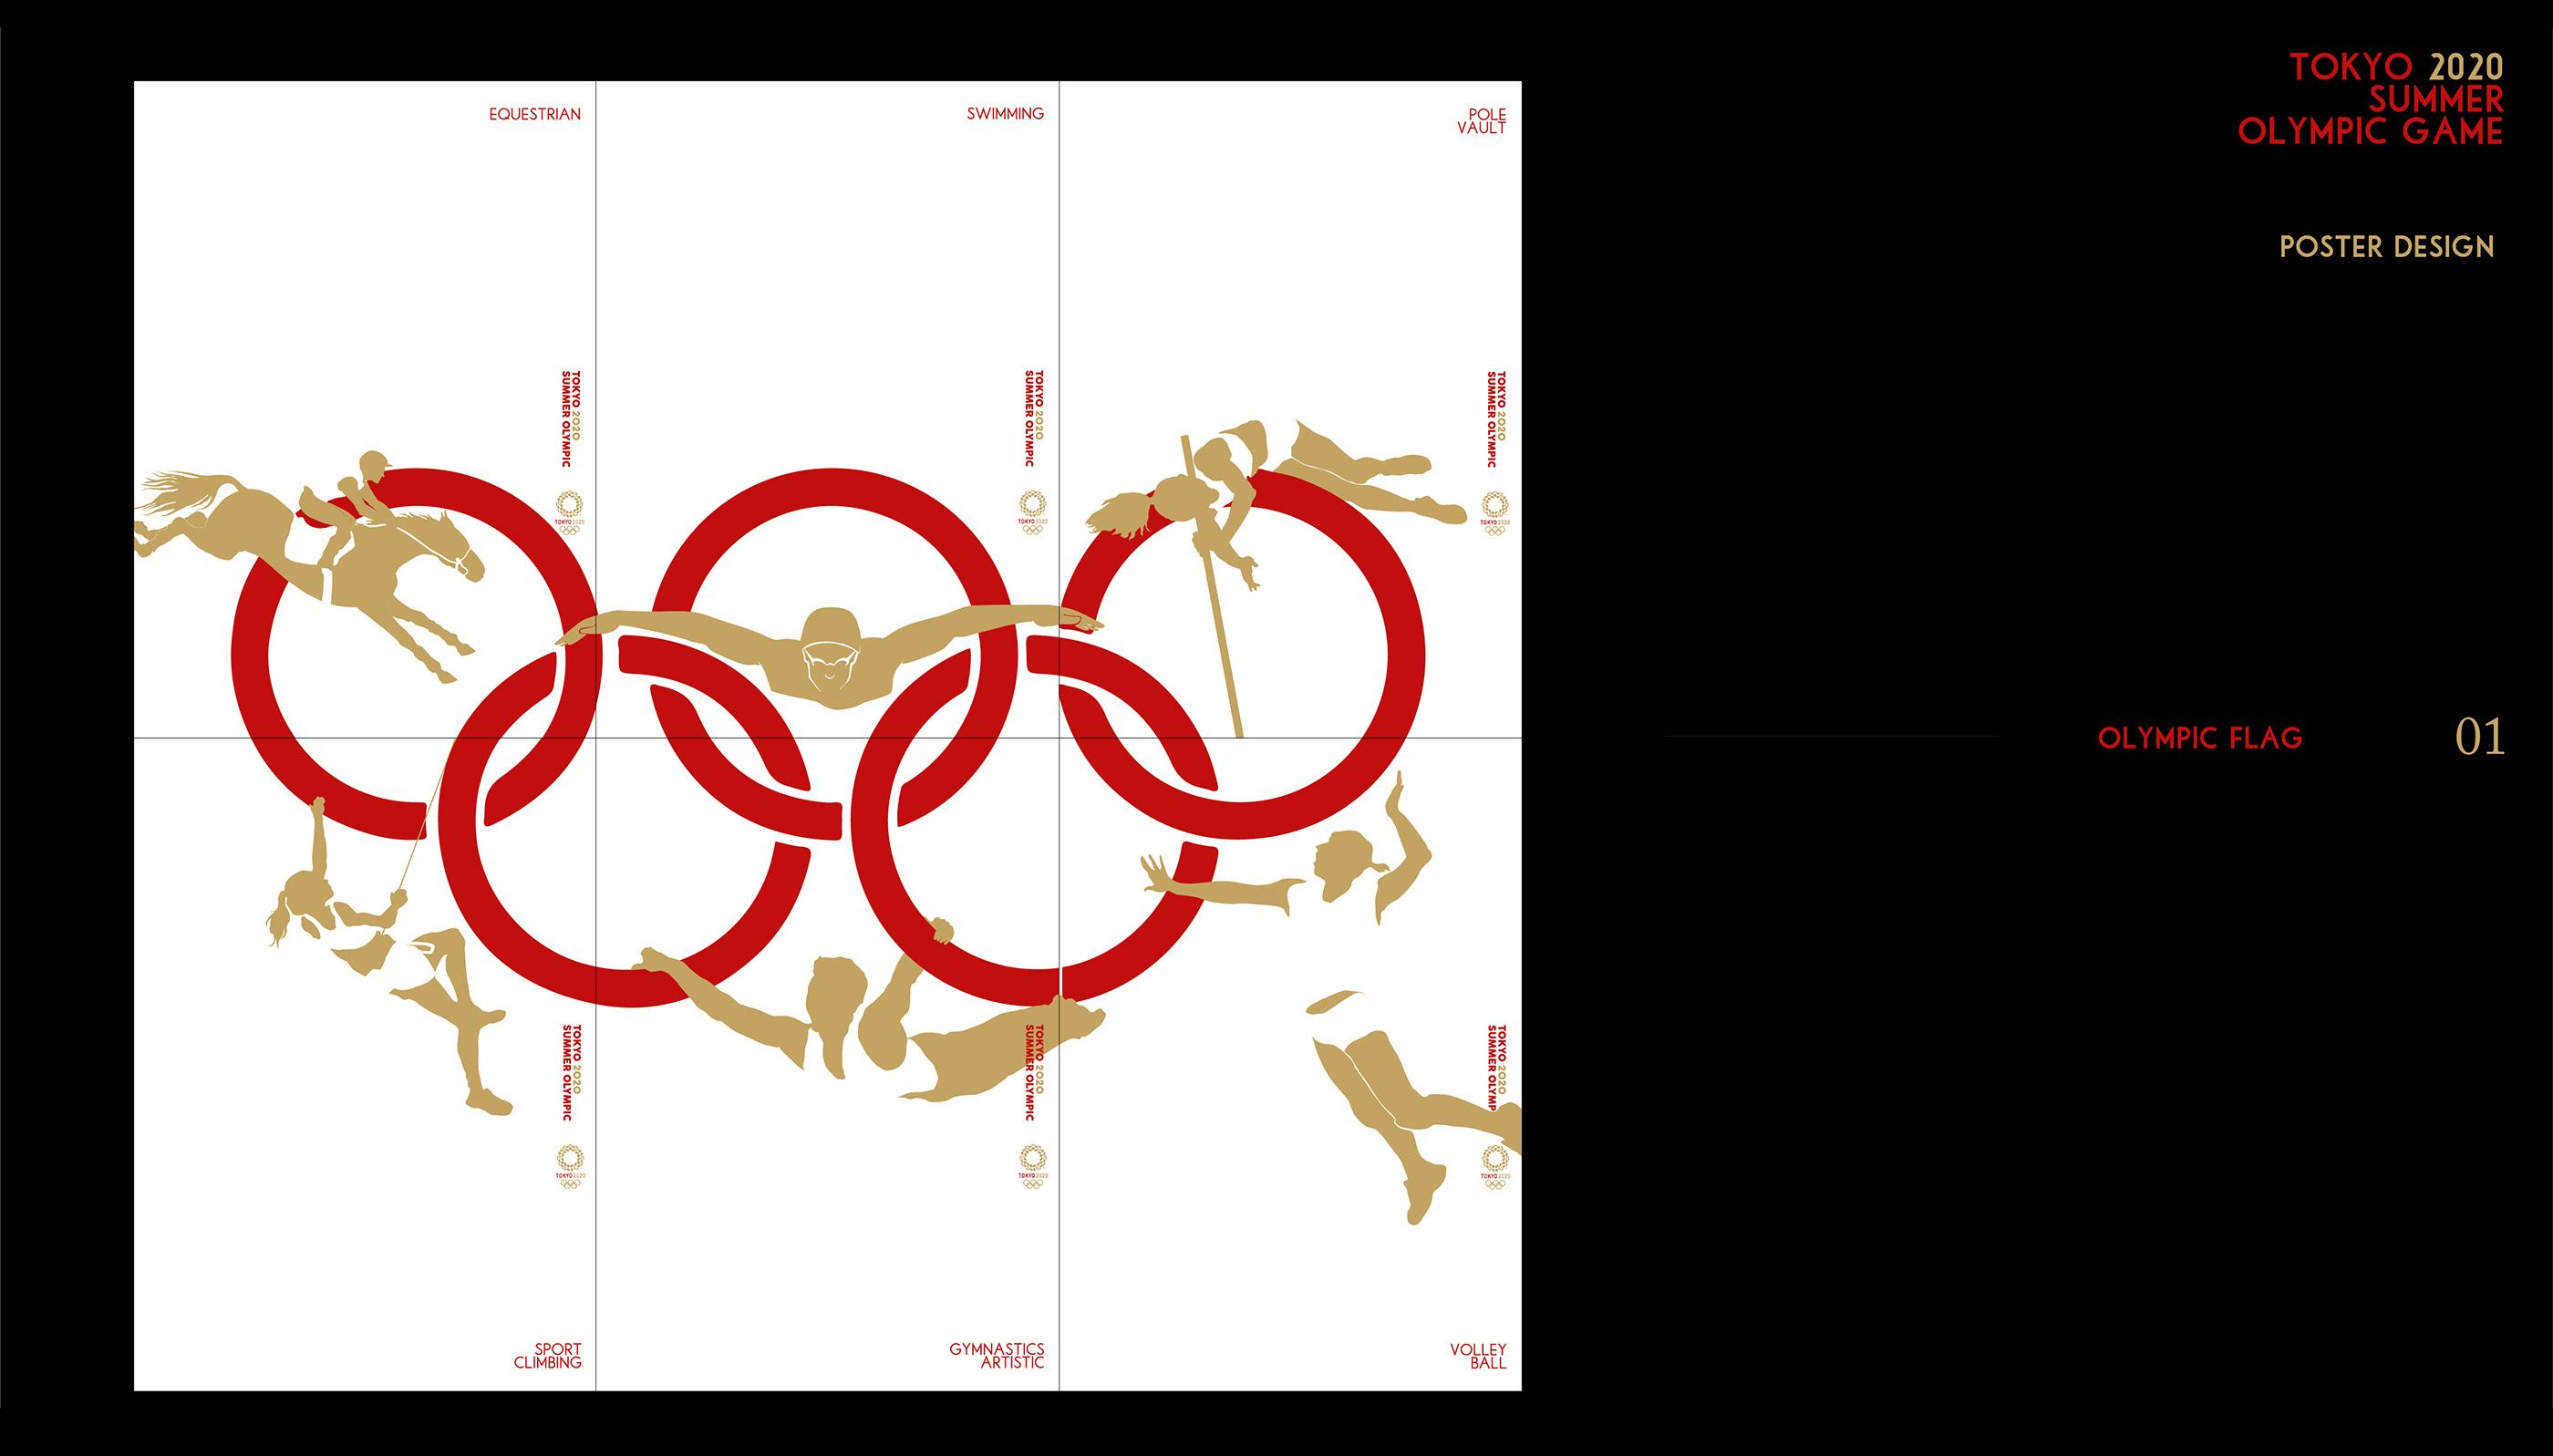 TOKYO 2020 SUMMER OLYMPIC GAME poster design on Behance